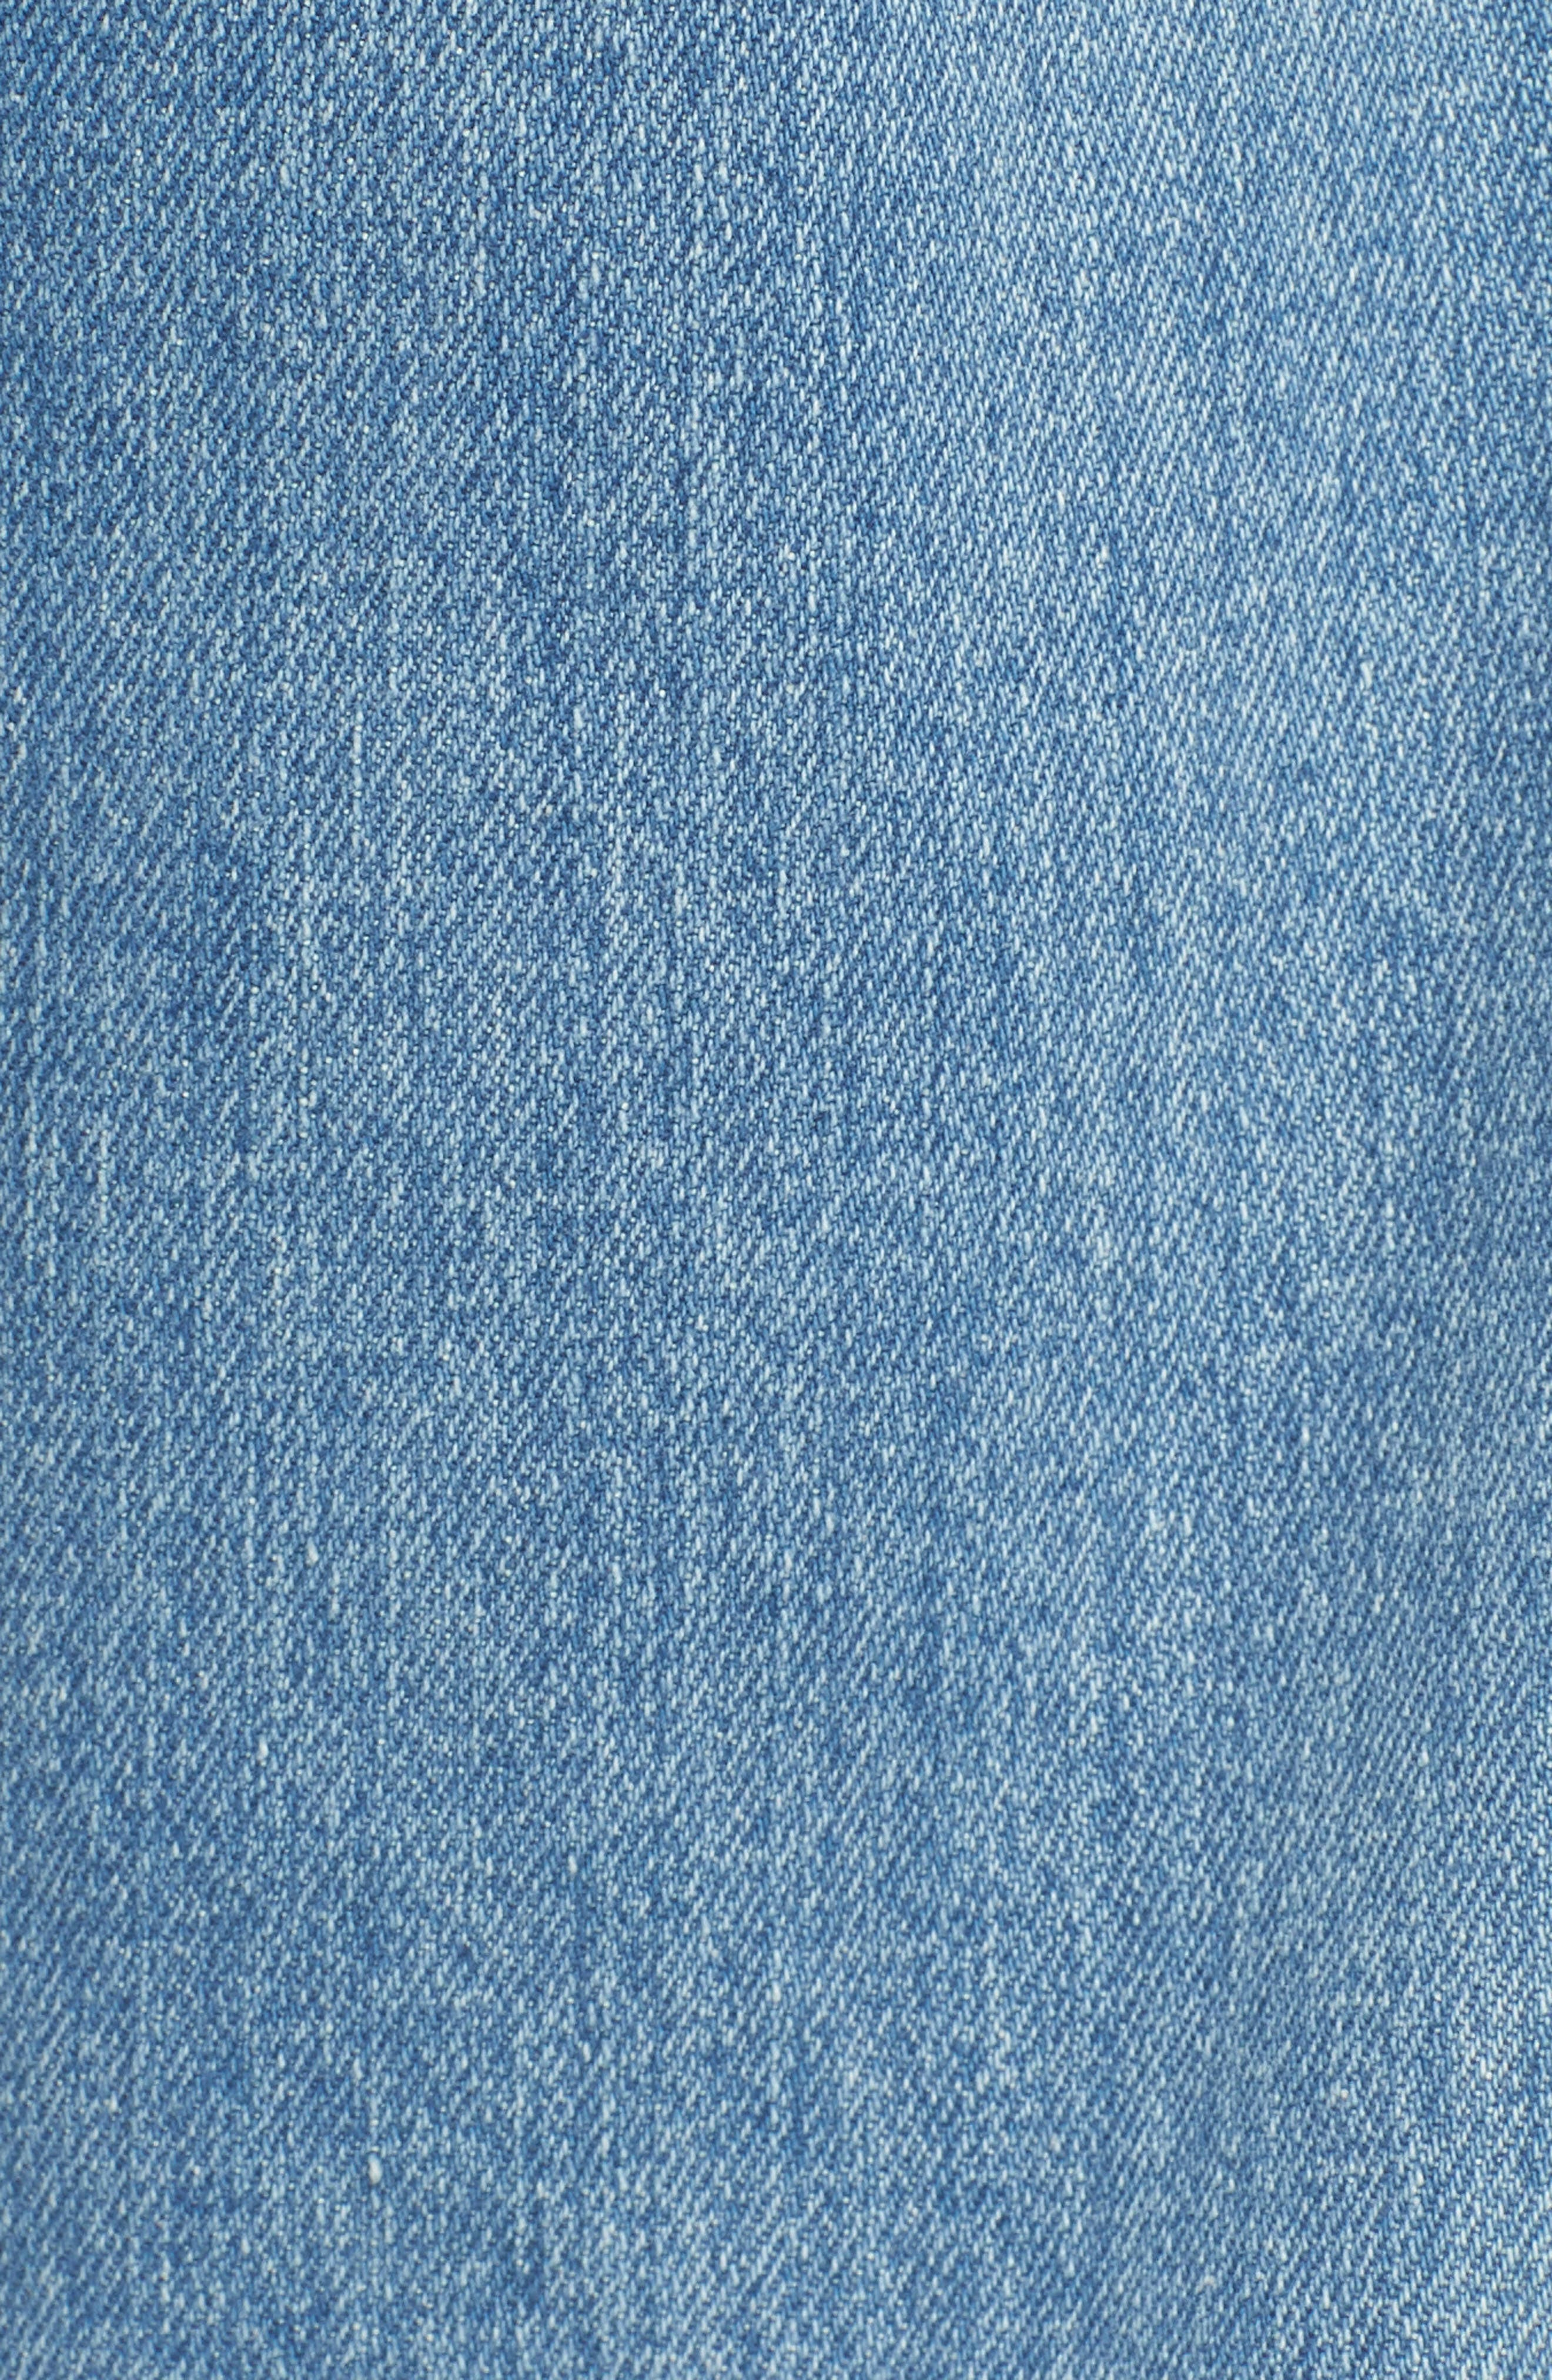 Austyn Relaxed Fit Jeans,                             Alternate thumbnail 5, color,                             Omega